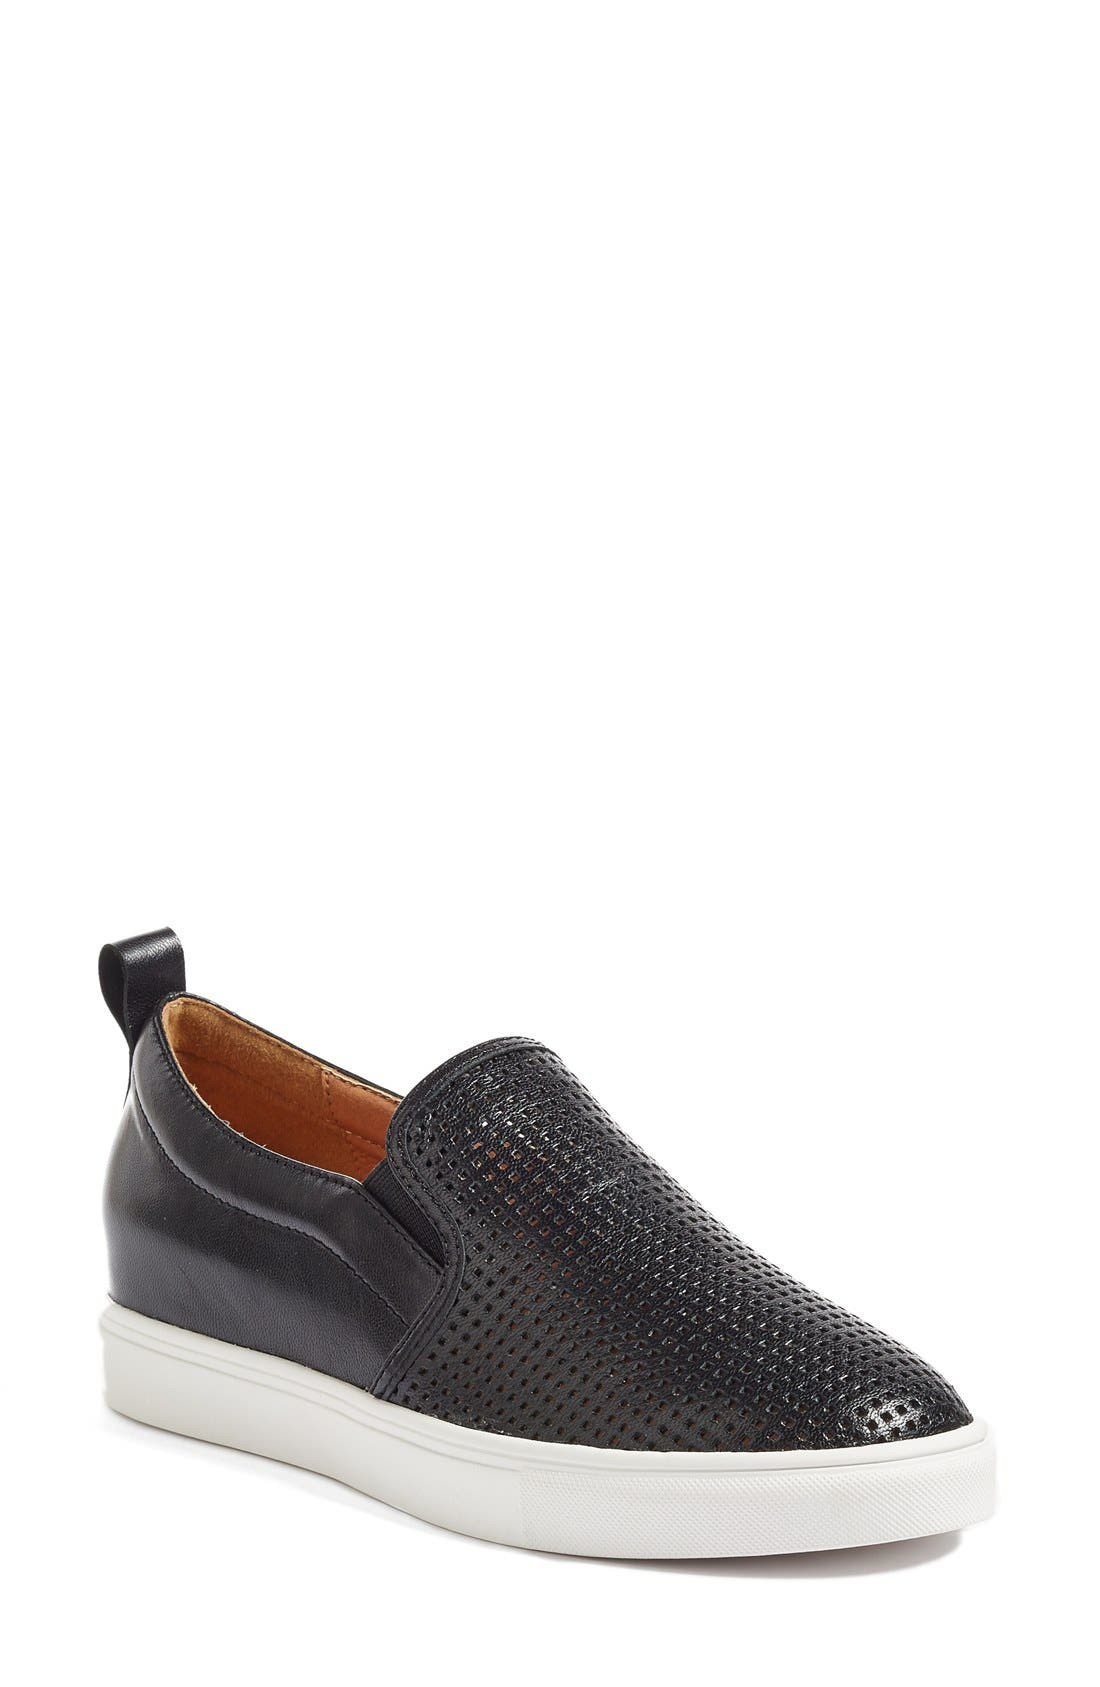 Eden Perforated Slip-On Sneaker,                         Main,                         color, Black Leather